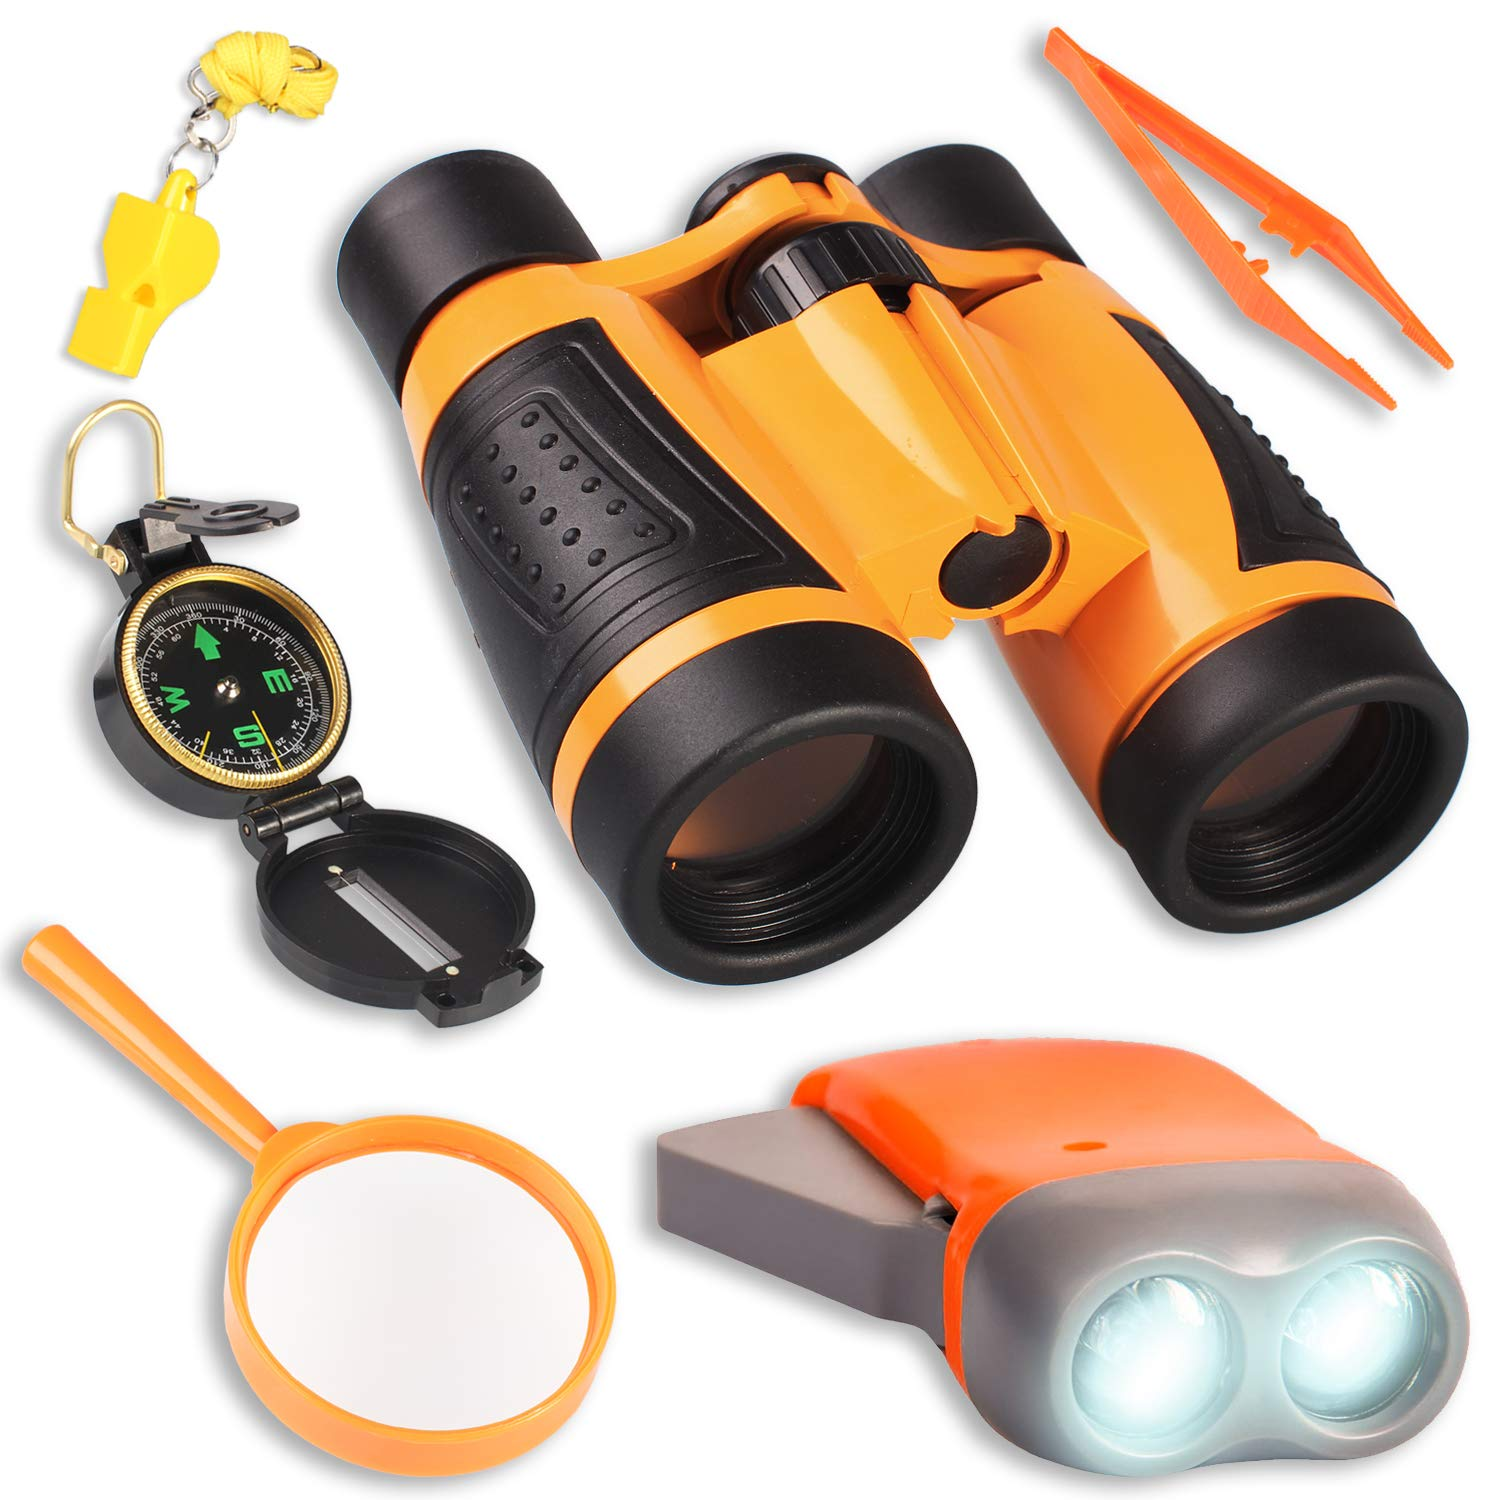 Perfect explorer set for kids